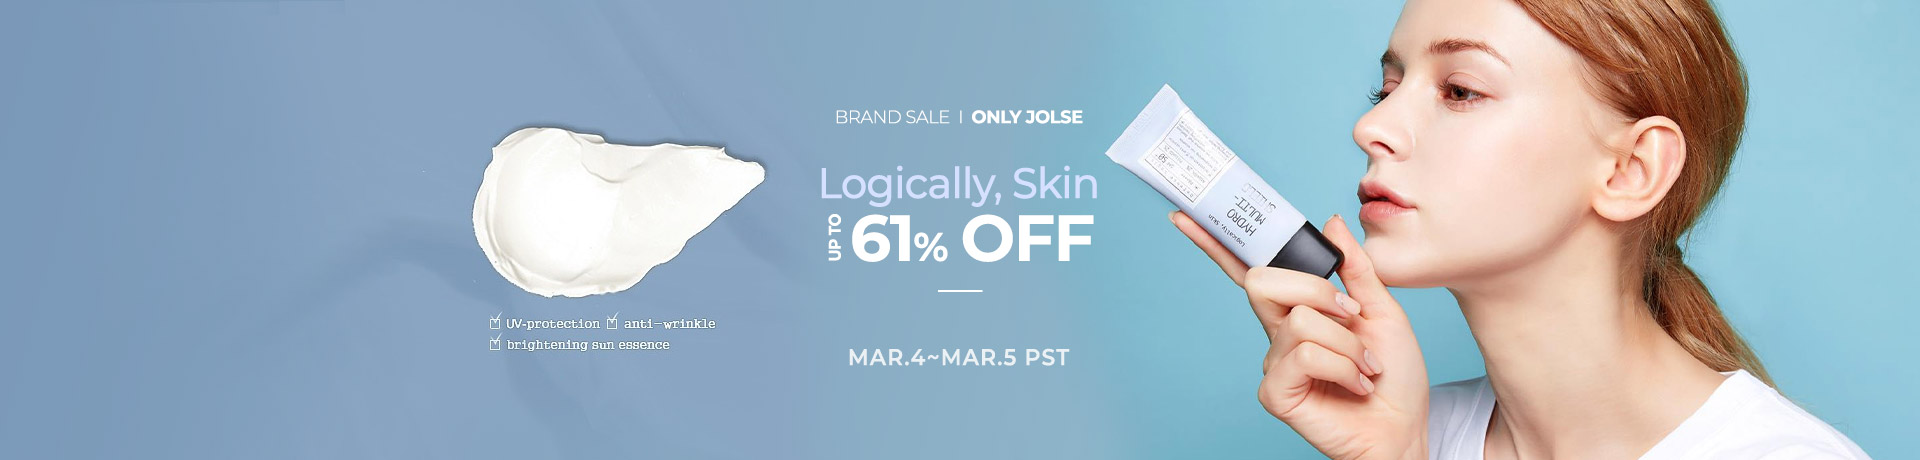 Logically, Skin Up to 61% OFF